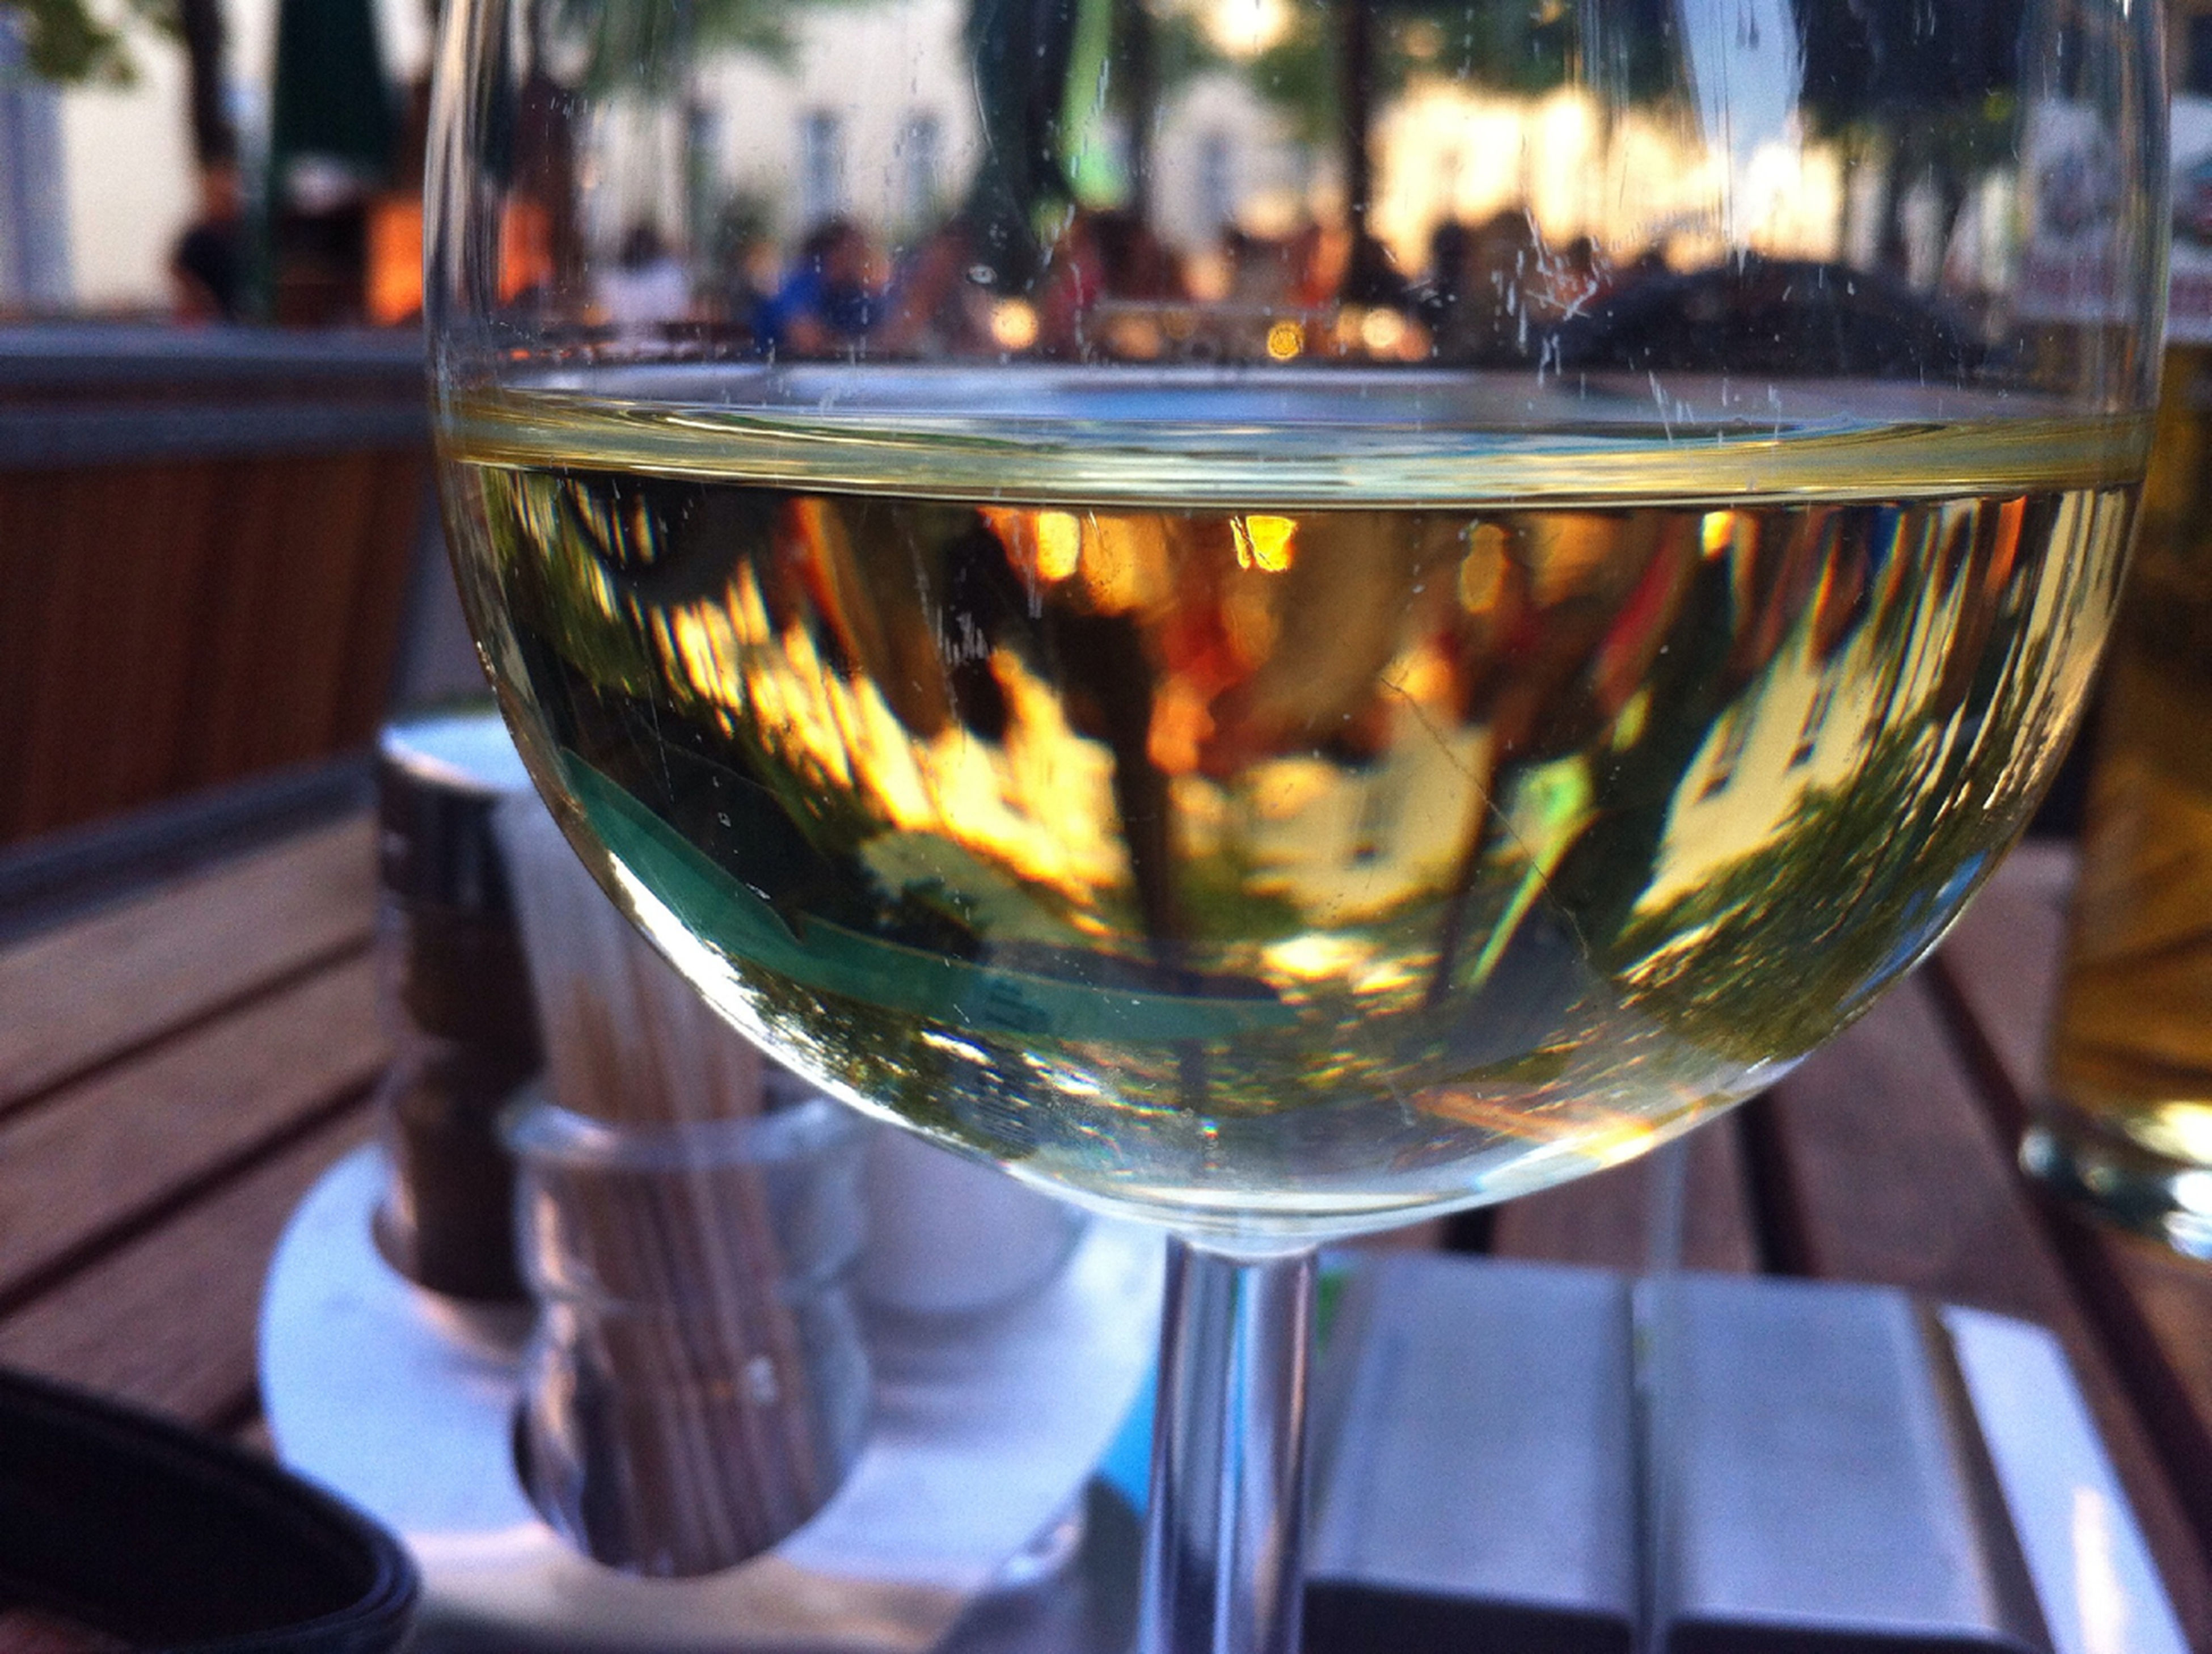 drink, food and drink, drinking glass, refreshment, table, indoors, glass - material, freshness, still life, transparent, close-up, alcohol, focus on foreground, glass, wineglass, wine, drinking straw, restaurant, no people, alcoholic drink